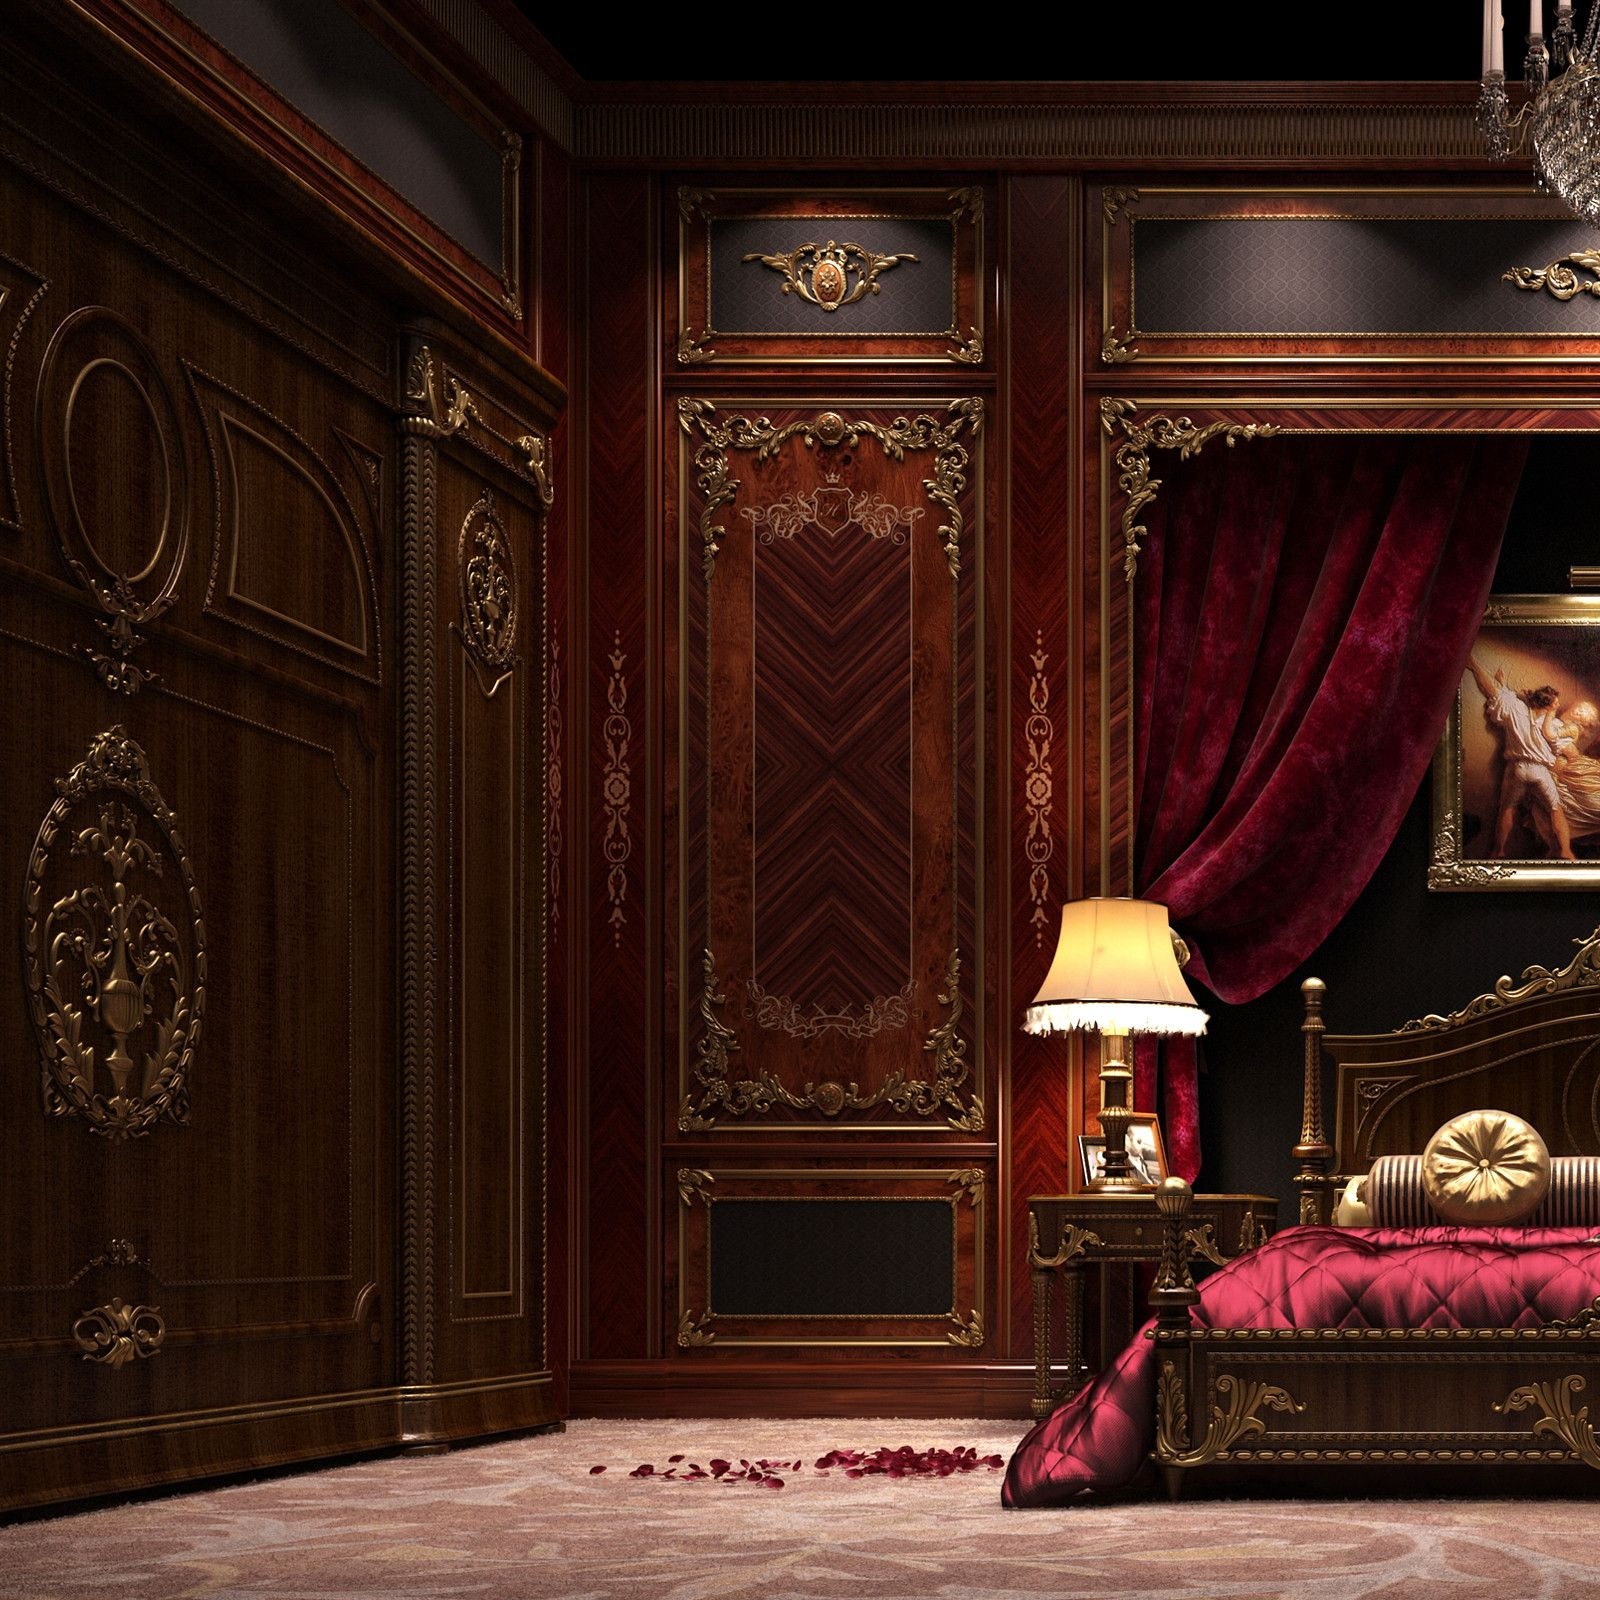 3ds Max Scene Asnaghi Bedroom Luxurious Bedrooms Luxury Bedroom Master Contemporary Bedroom Design Red luxury room pictures